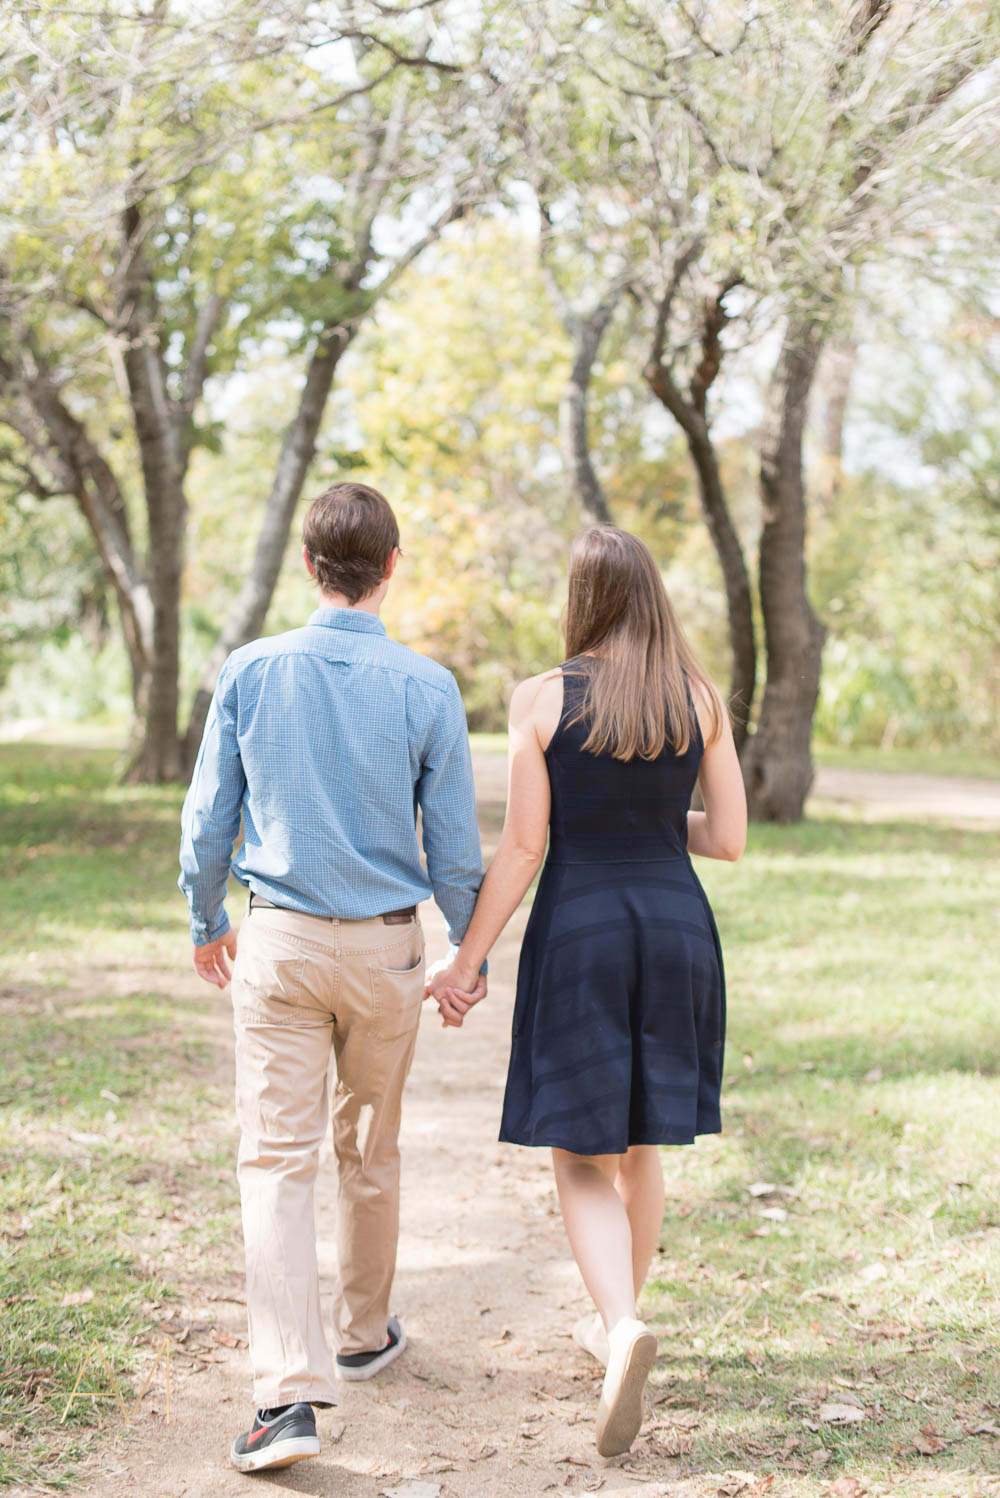 AshleighMillerWeddings-KatieMax-Engagement-Austin-TX-1211-Blog.jpg